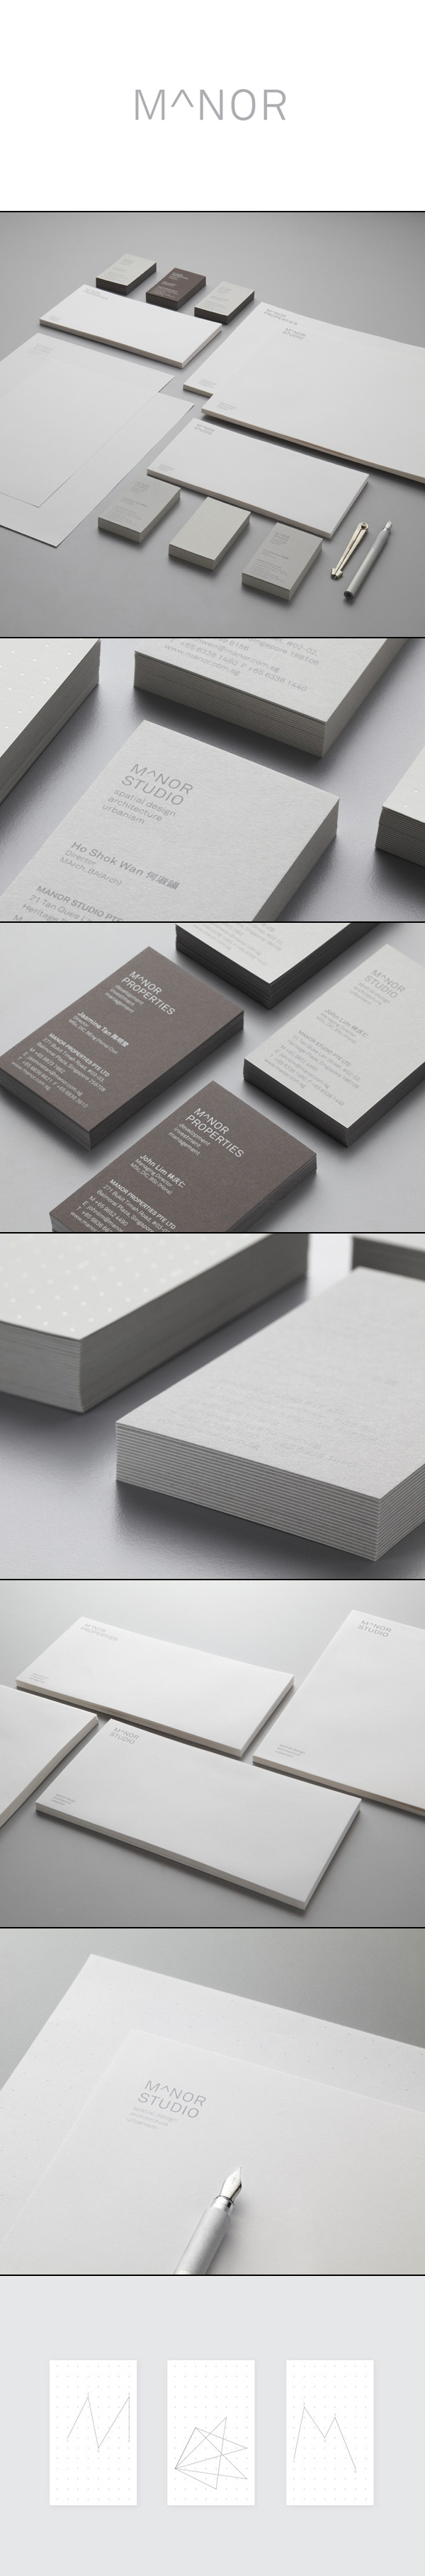 New Brand Identity For Manor Studio By Manic Bp O Brand Identity Branding Design Identity